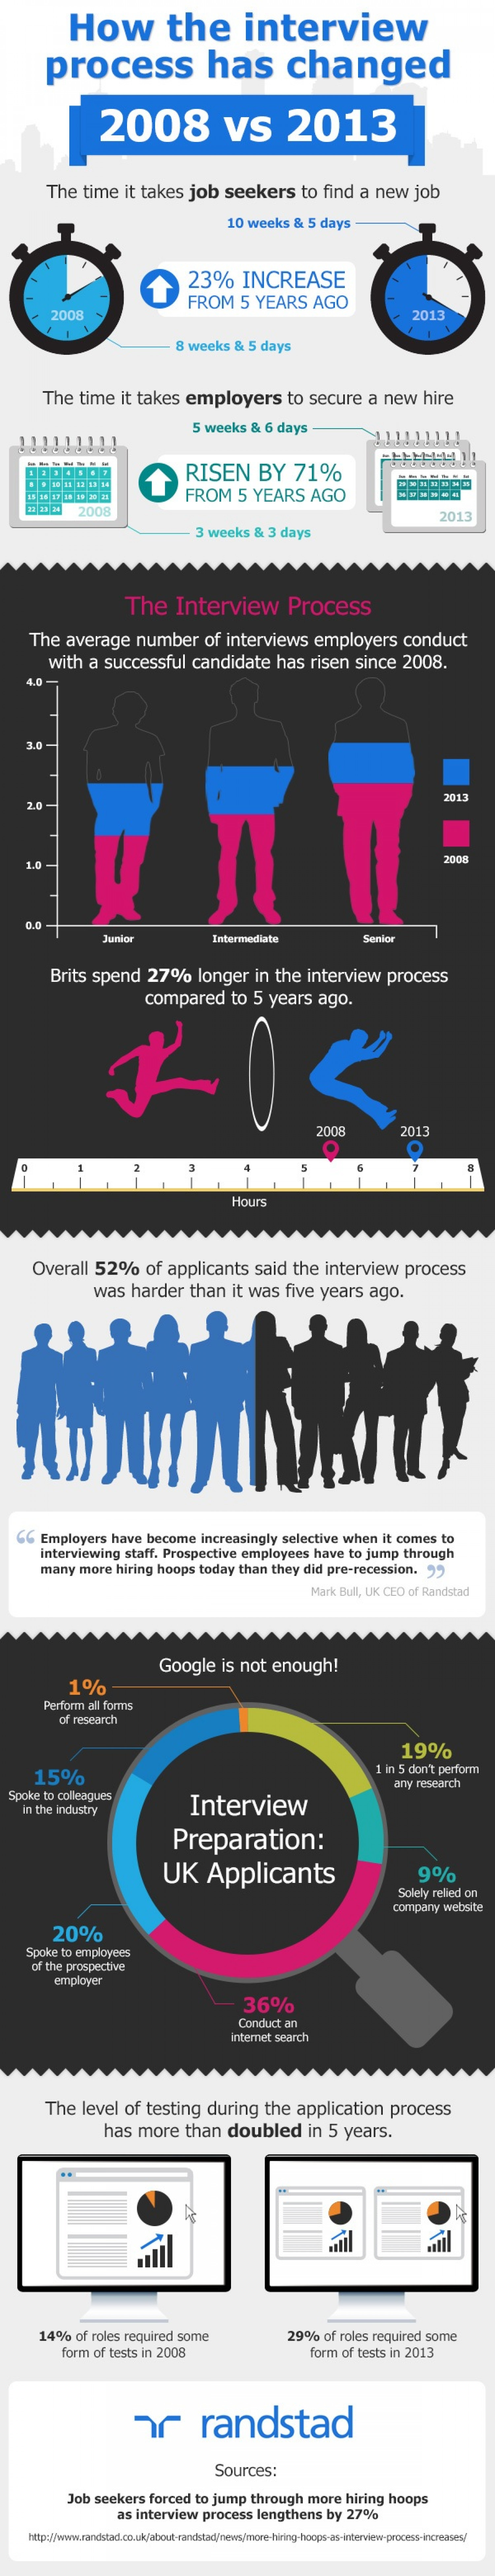 How the interview process has changed Infographic